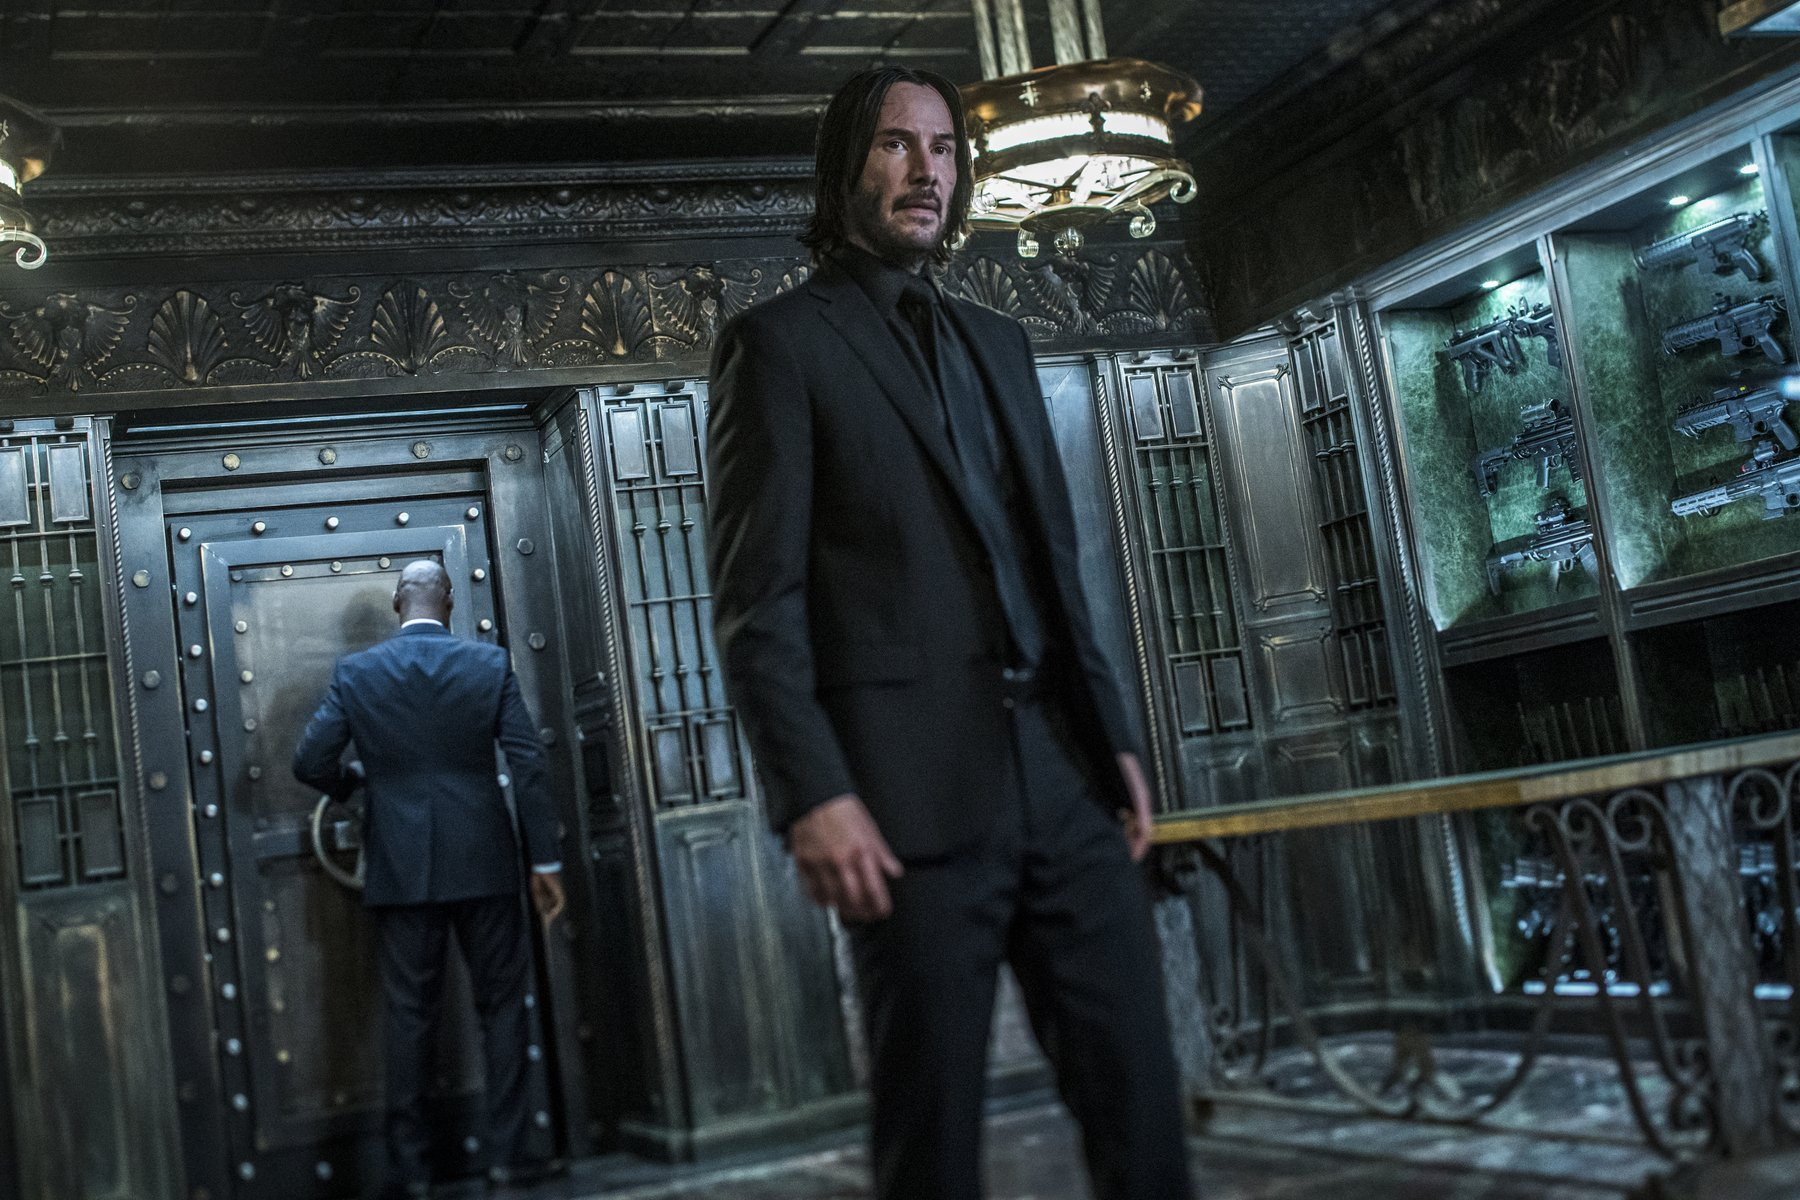 'John Wick 3' dethrones 'Avengers: Endgame' with $57 million